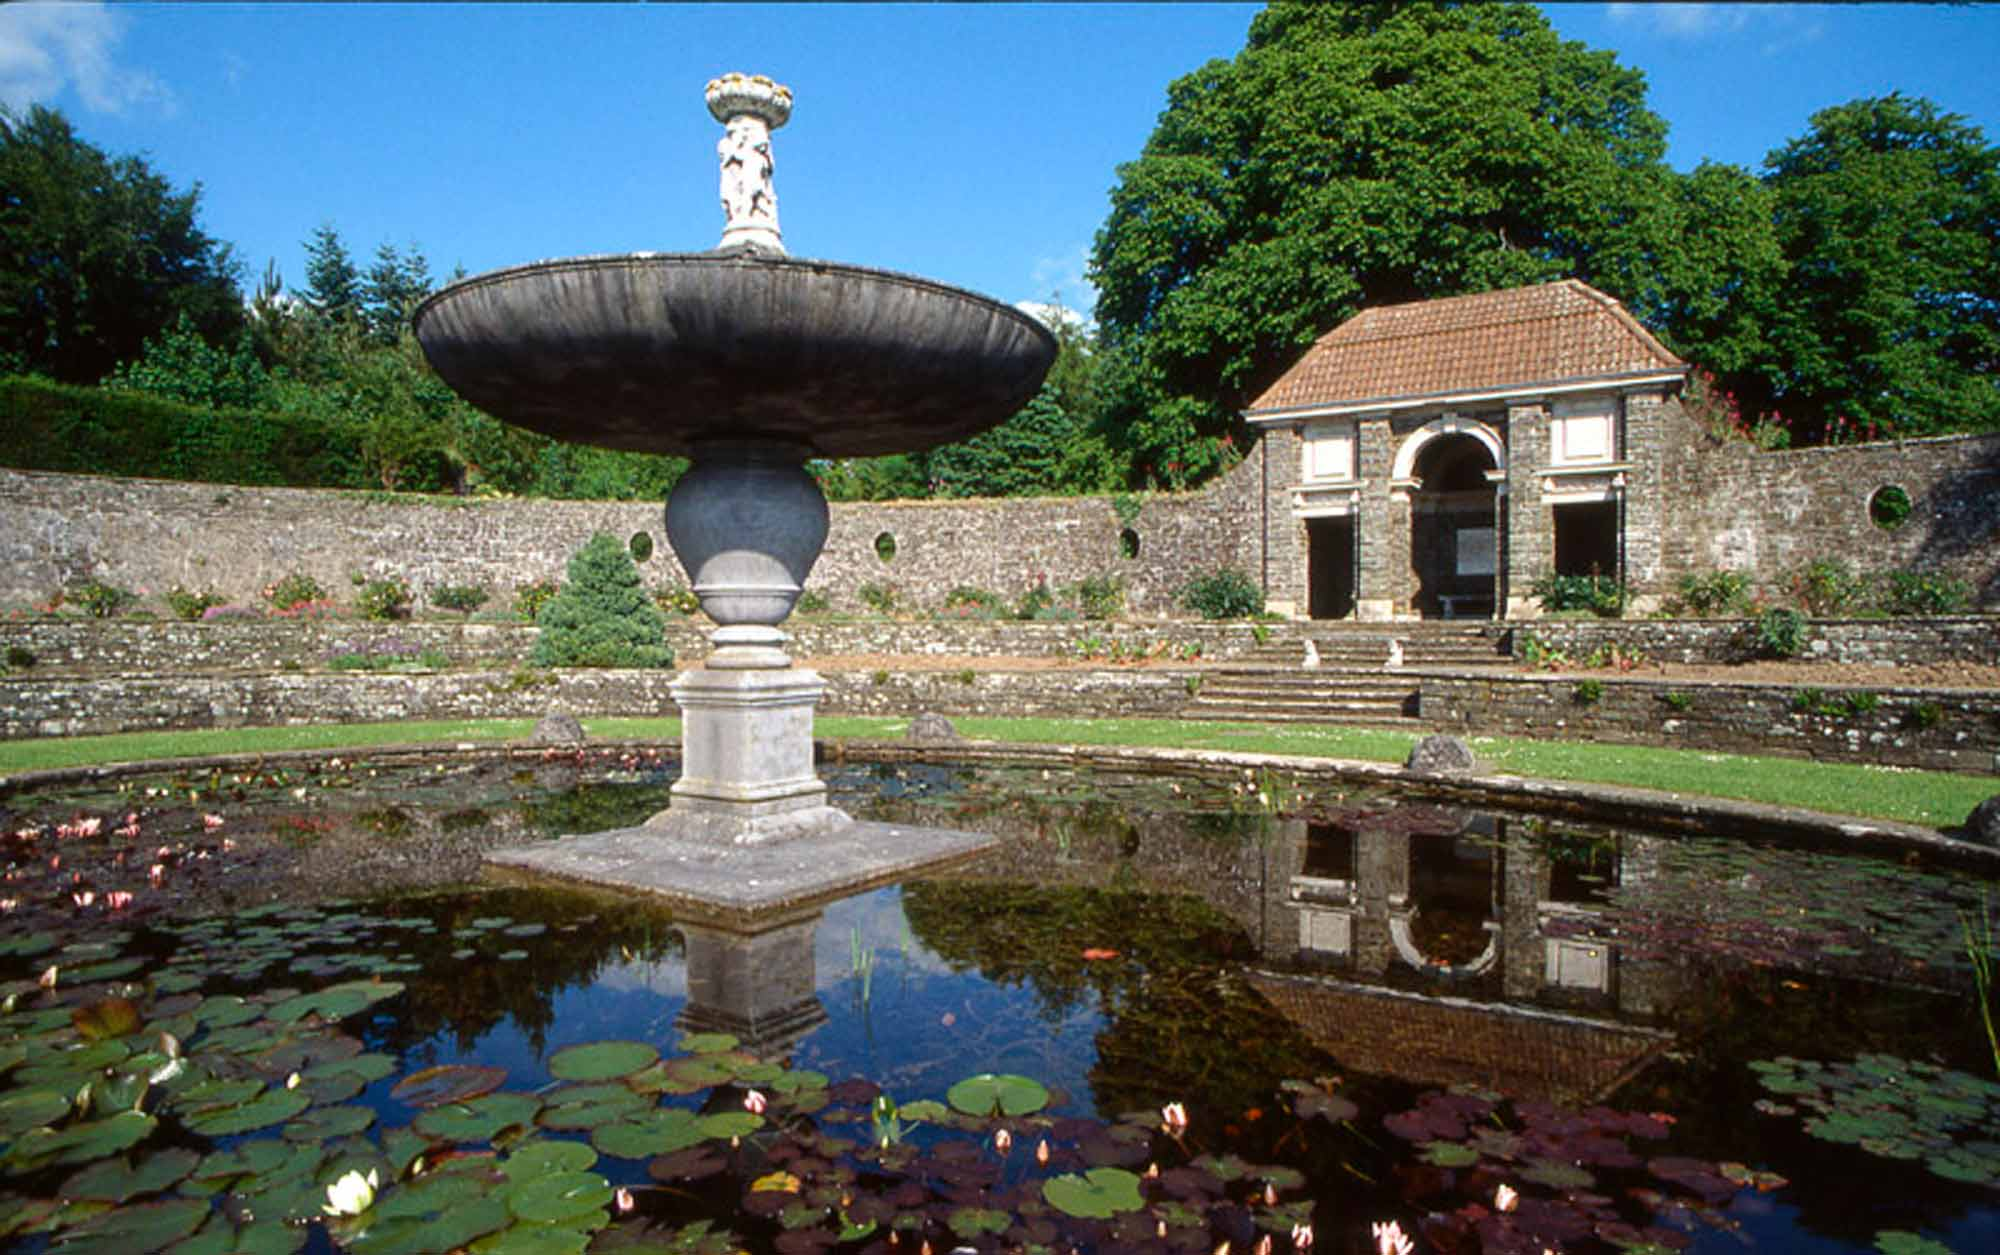 Close up of fountain and pond at Heywood Gardens with loggia in background with red tiled roof.